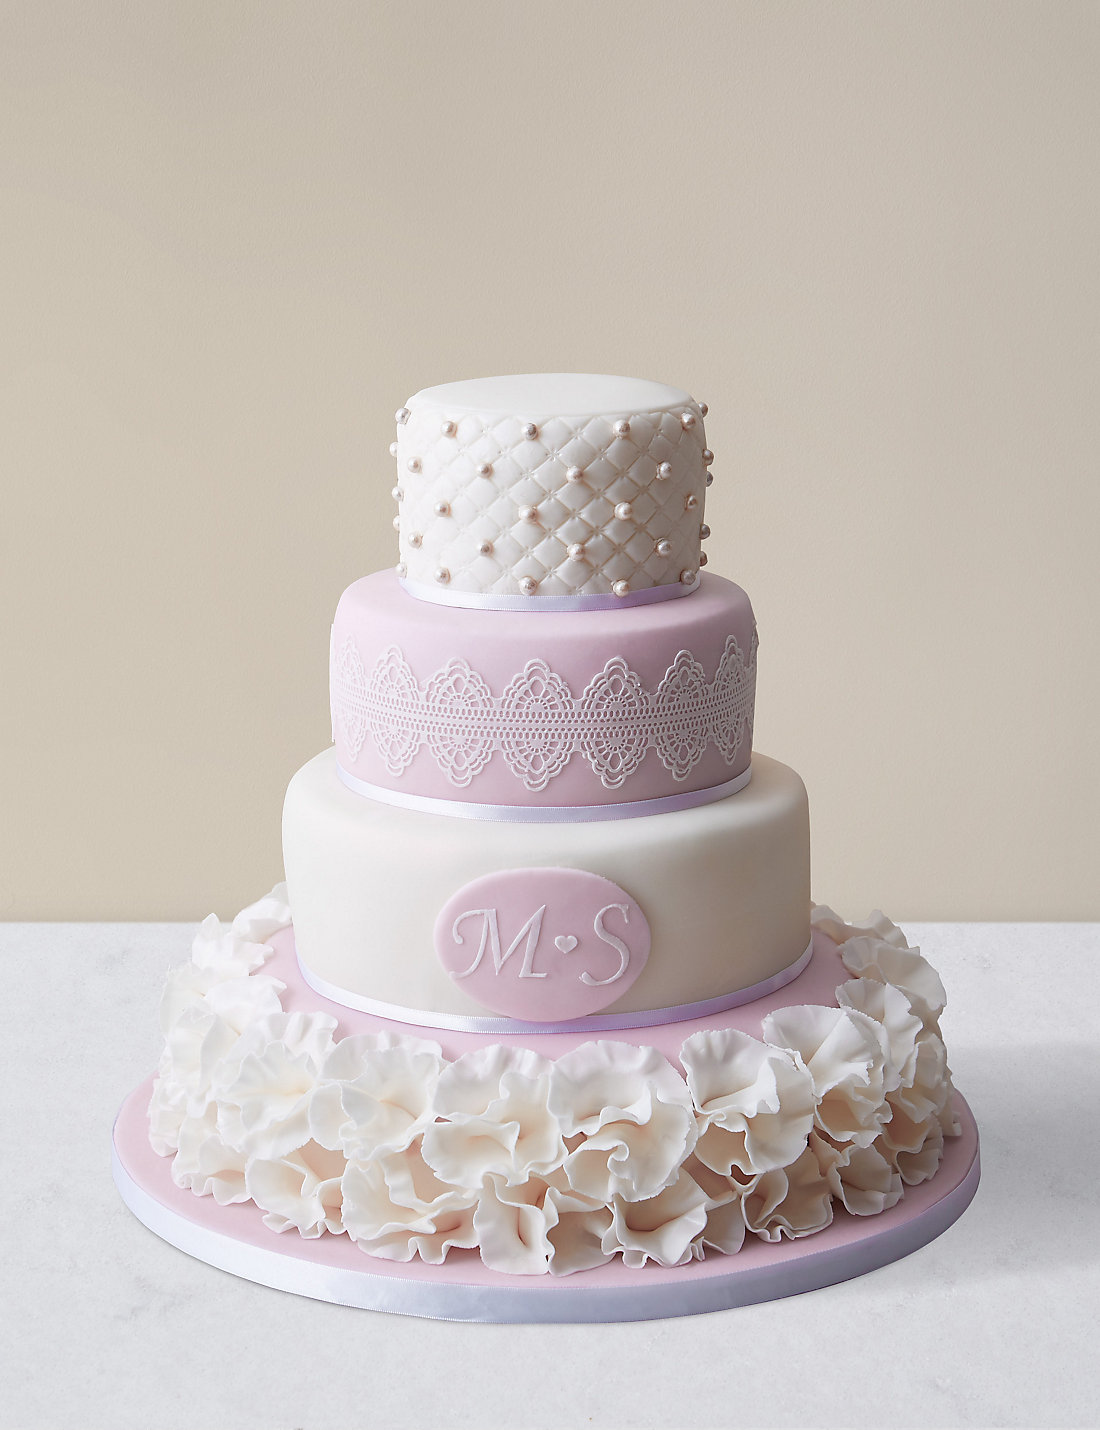 Harmony wedding cake available to order until 5th february 2018 m harmony wedding cake available to order until 5th february 2018 junglespirit Gallery